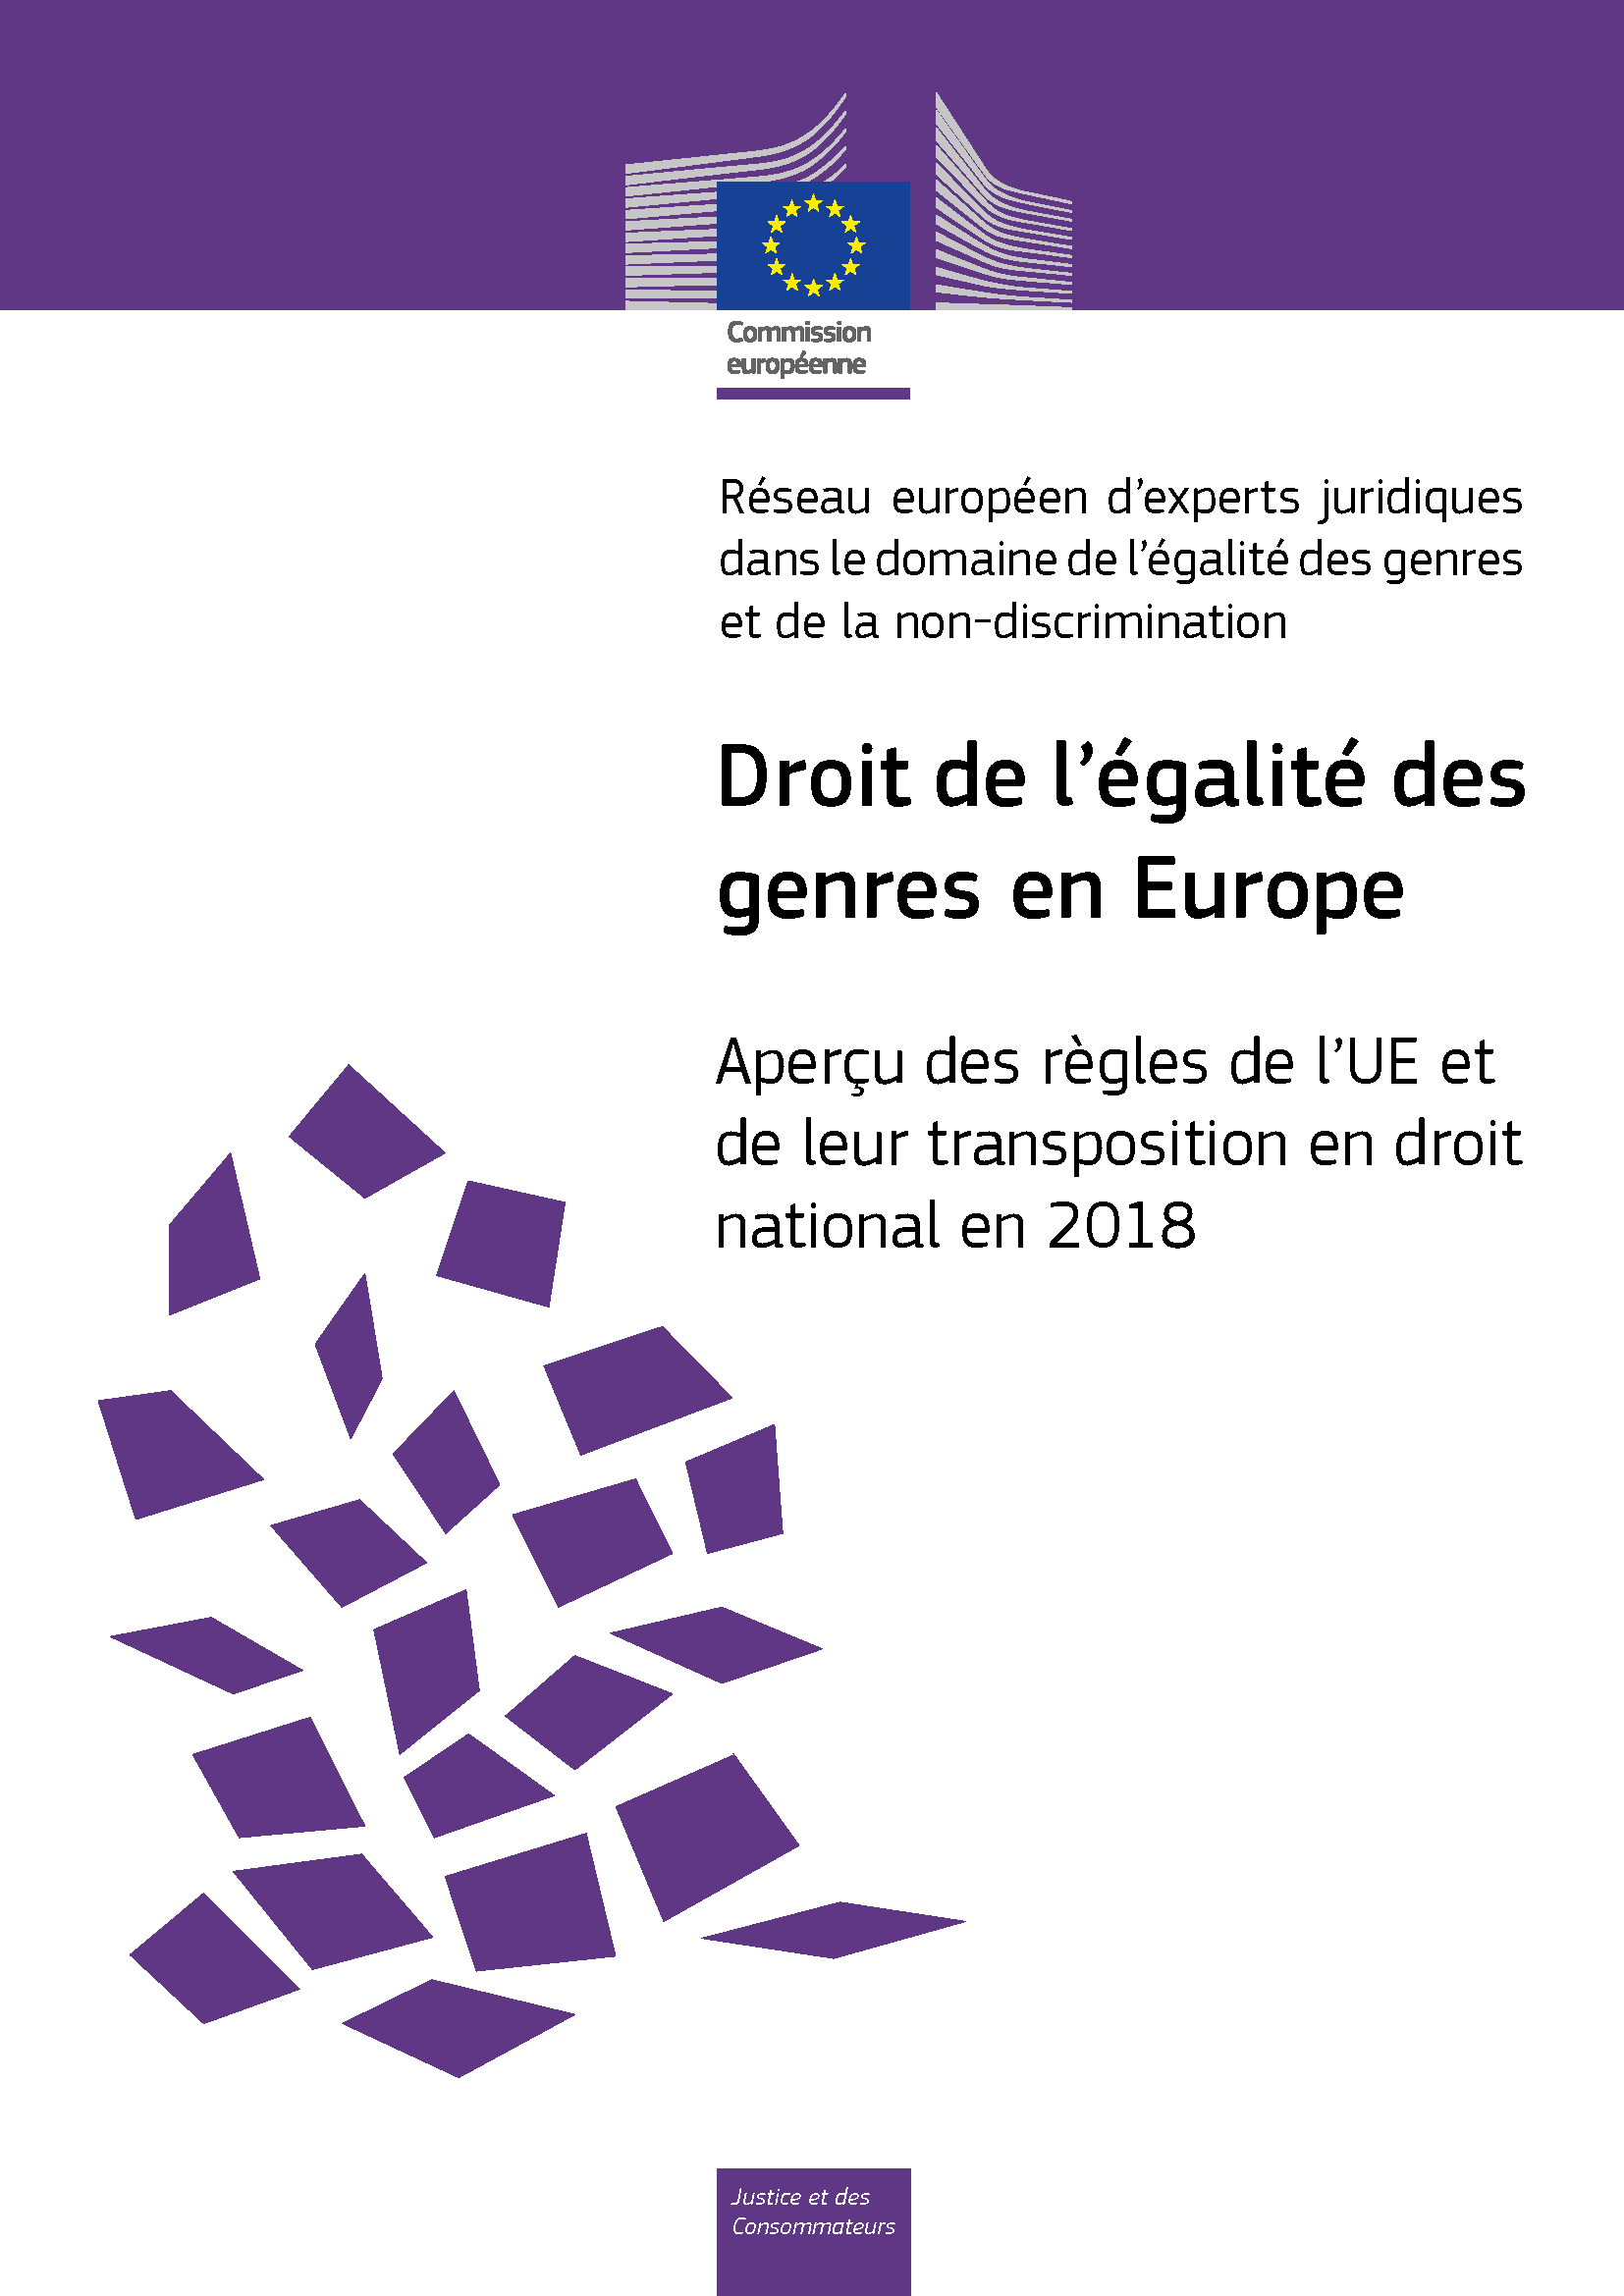 Comparative analyses - European Equality Law Network